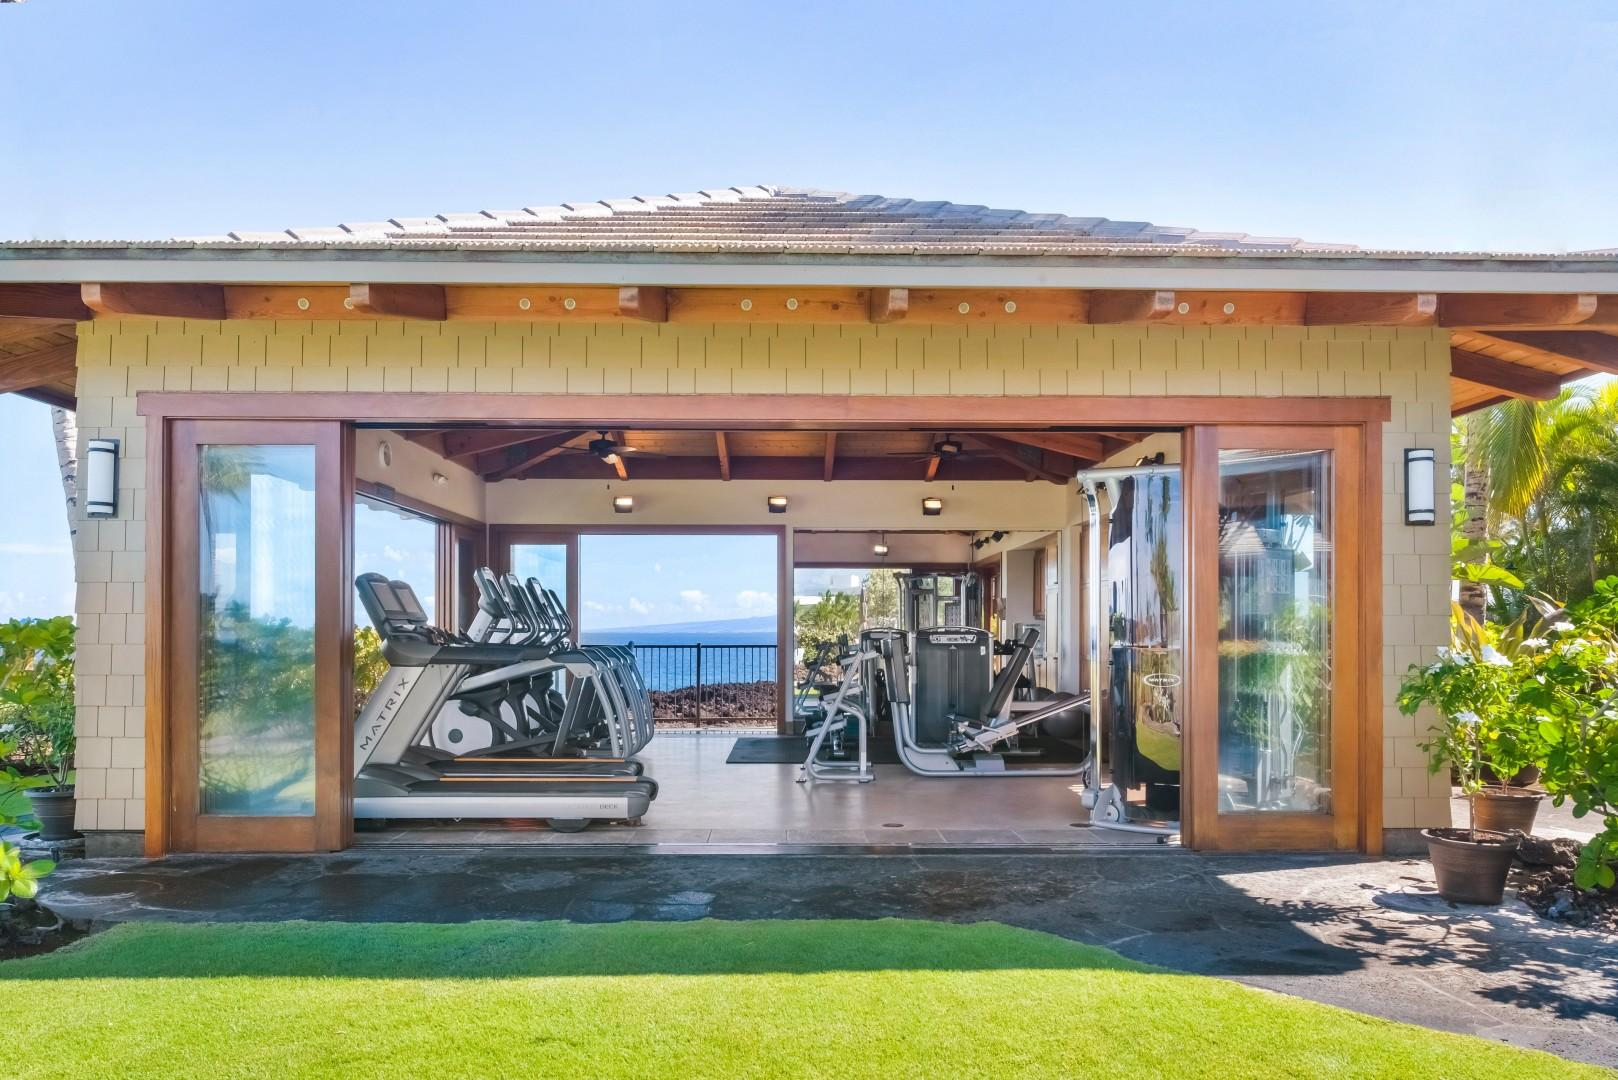 Hali'i Kai's private fitness center perched on the cliffs overlooking the ocean